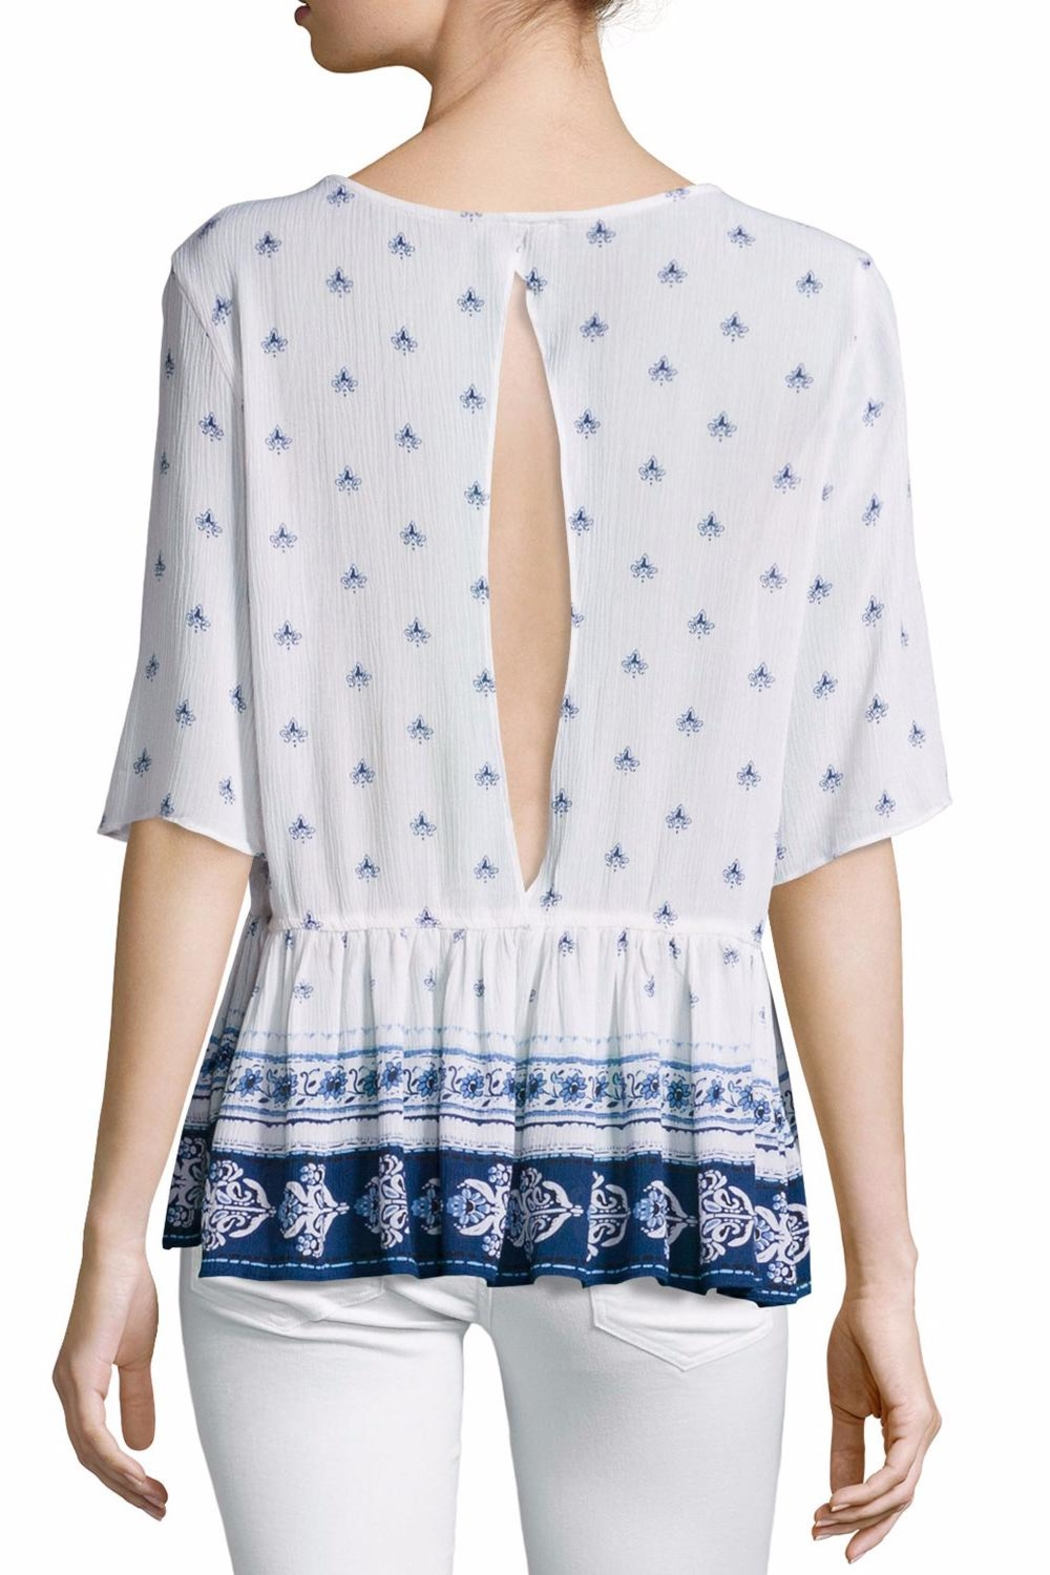 On The Road Printed Peplum Top - Front Full Image